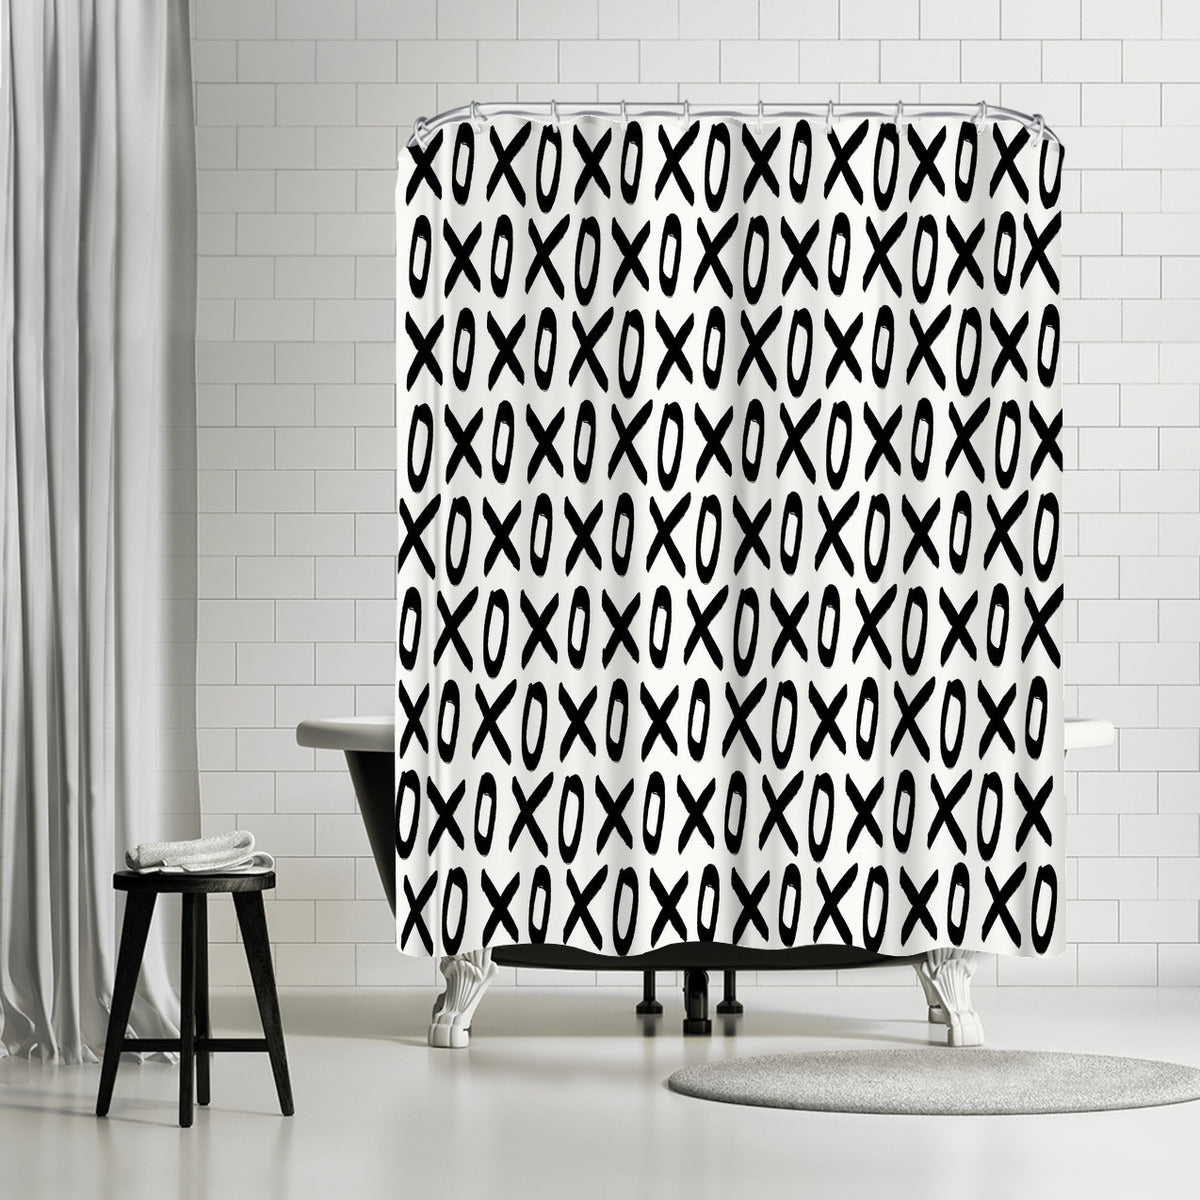 Xoxo by Leah Flores Shower Curtain